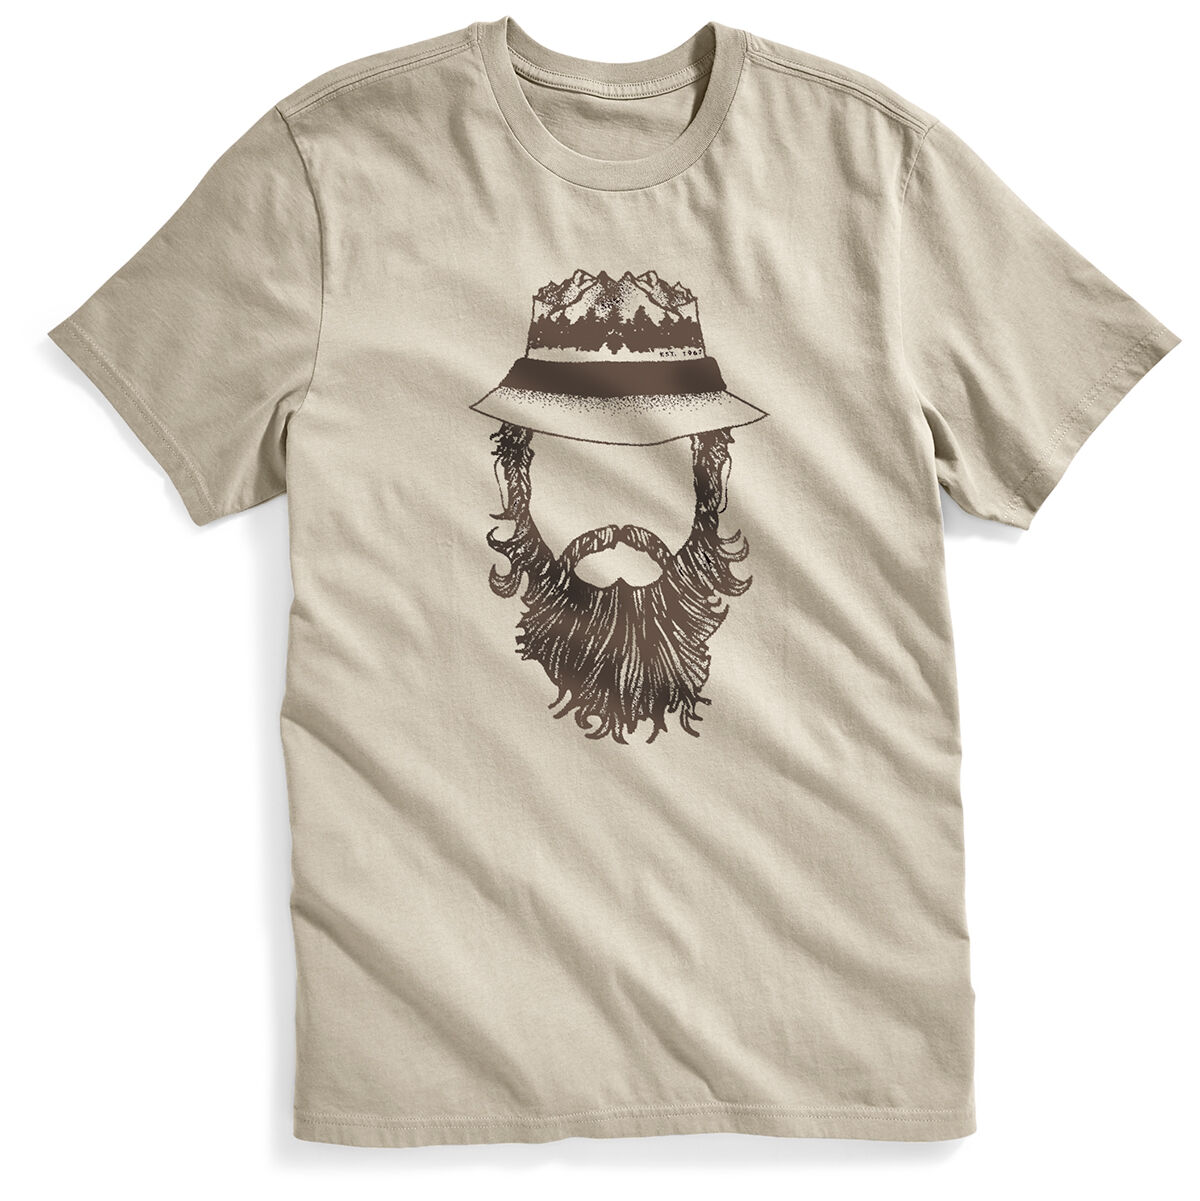 Ems Men's Mountain Man Short-Sleeve Graphic Tee - White, L